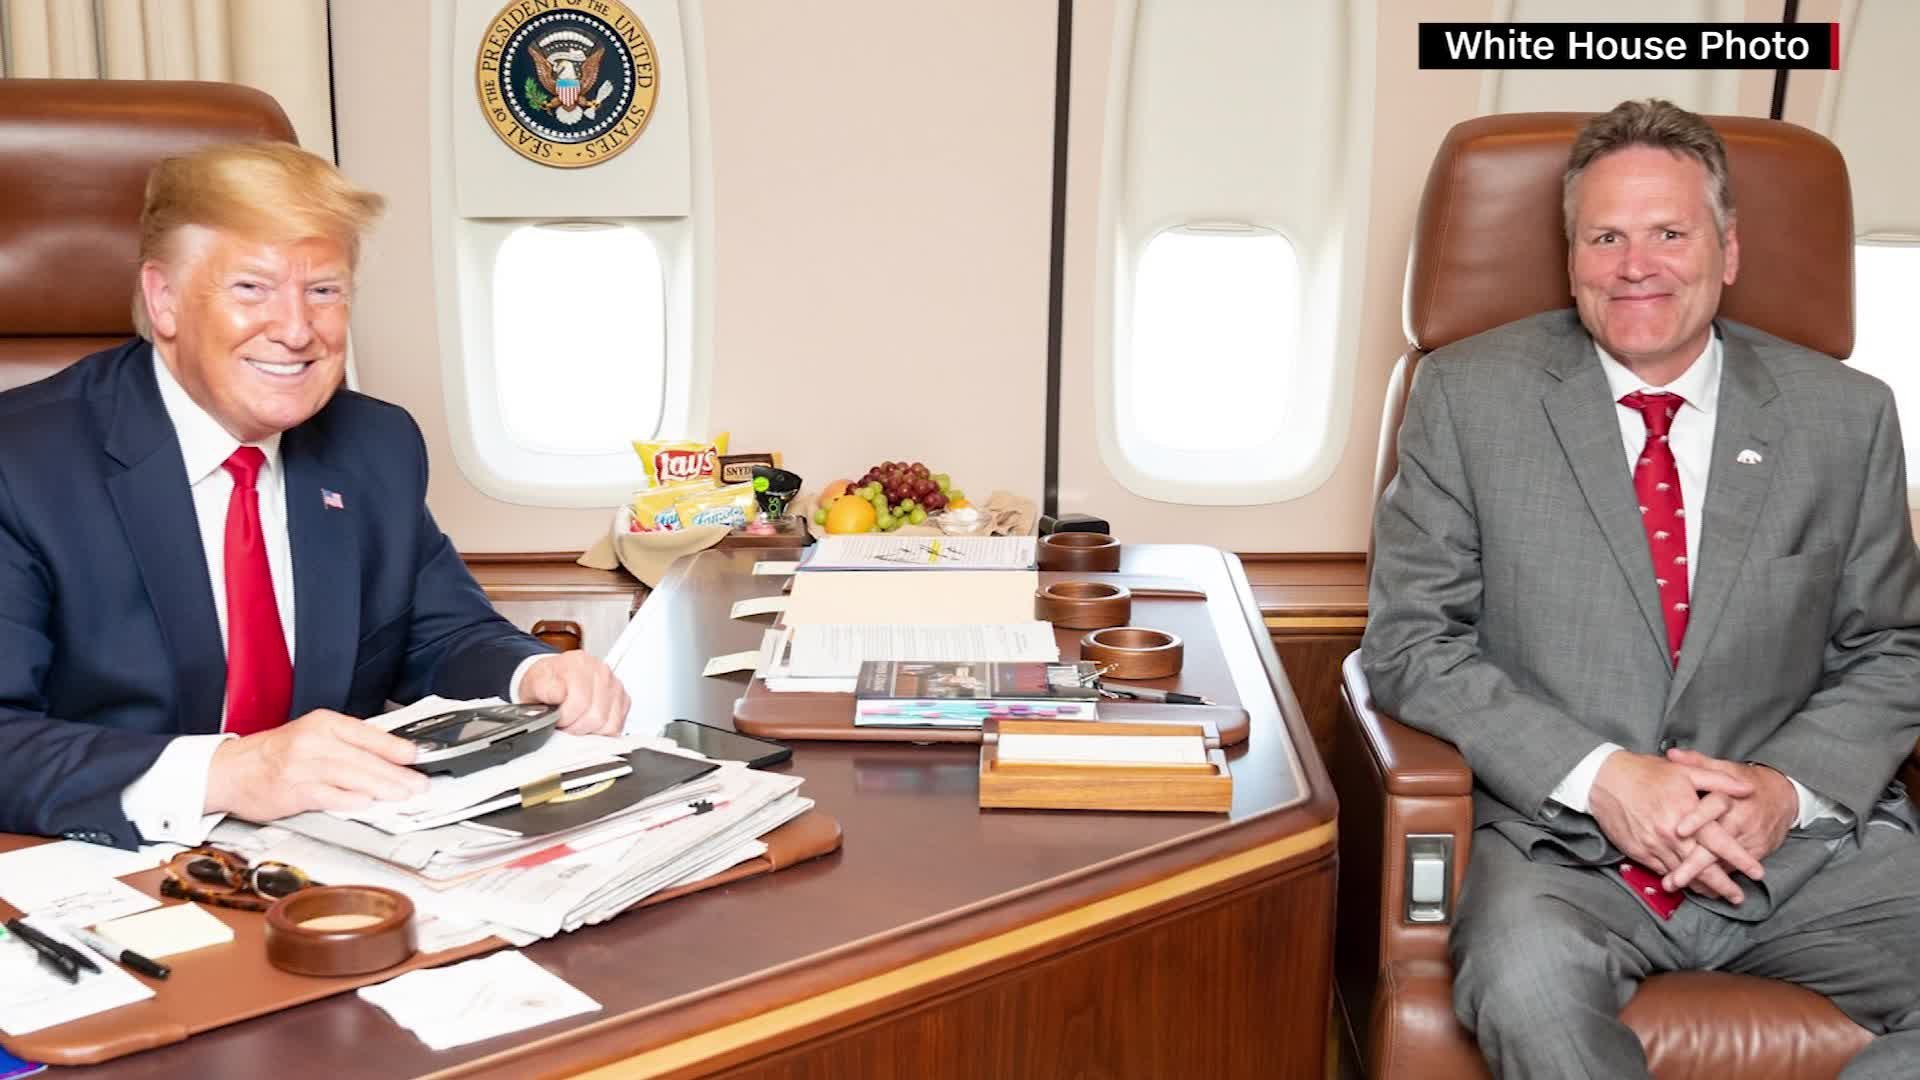 Alaska Gov. Mike Dunleavy met with President Trump aboard Air Force One on June 26, in this photo obtained by CNN.